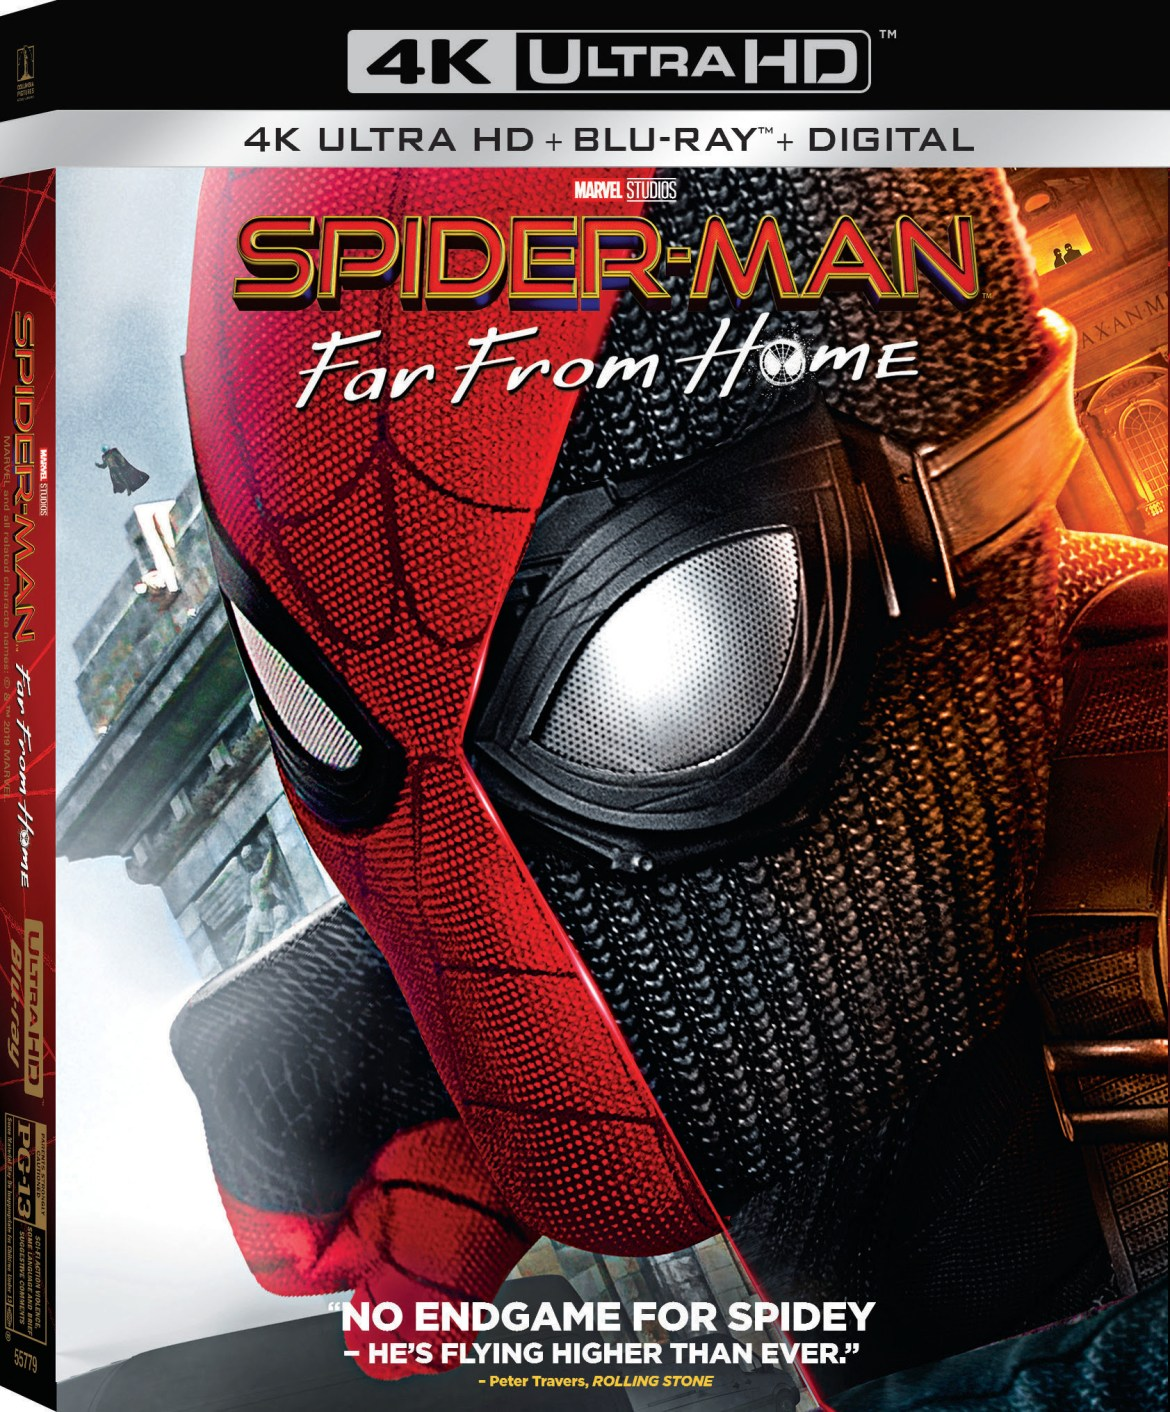 Spider-Man: Far From Home coming to Digital on 9/17 and 4K Ultra HD Blu-ray & DVD 10/1